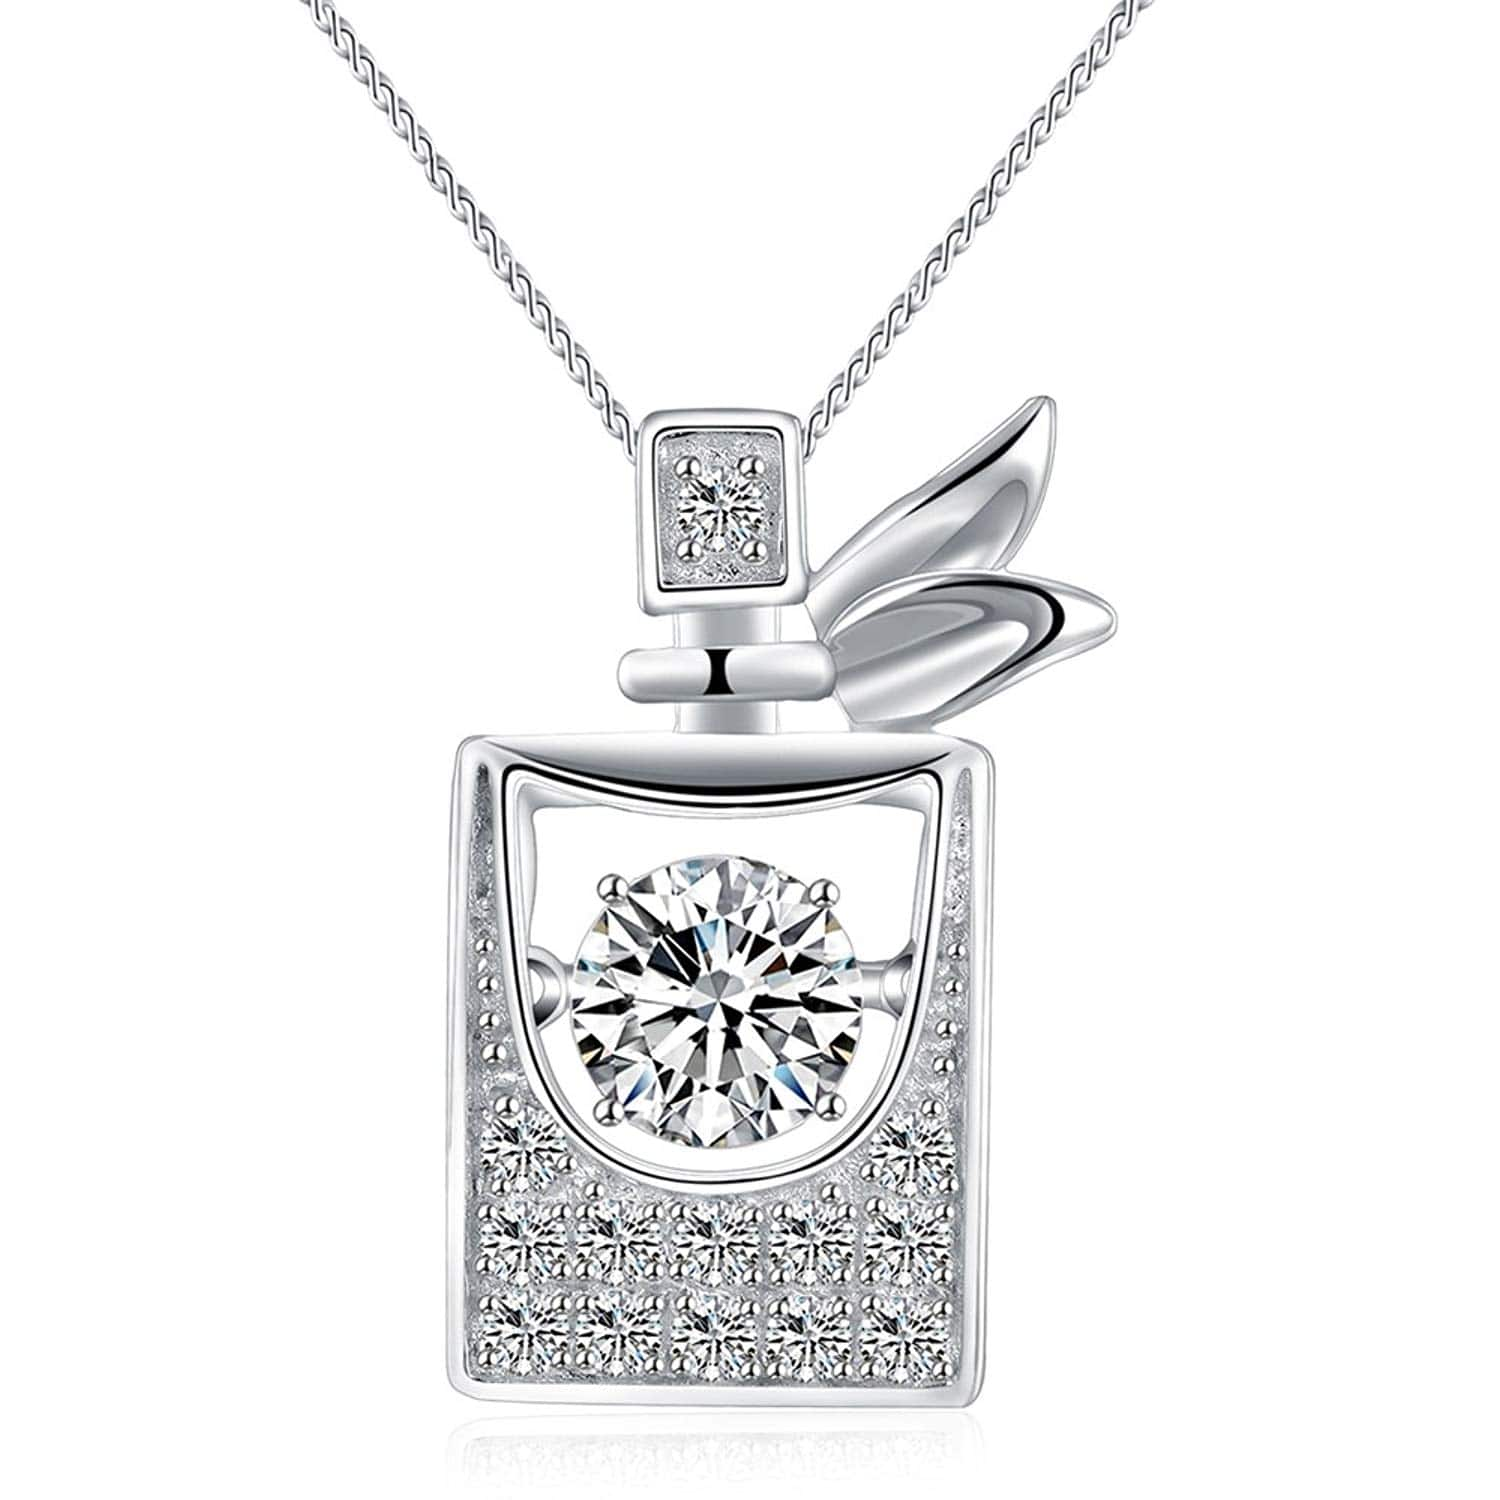 "Sable ""Scent of Paris"" Pendant Necklace, Best Idea Gifts for Girls & Women - $9.99 + FSSS"